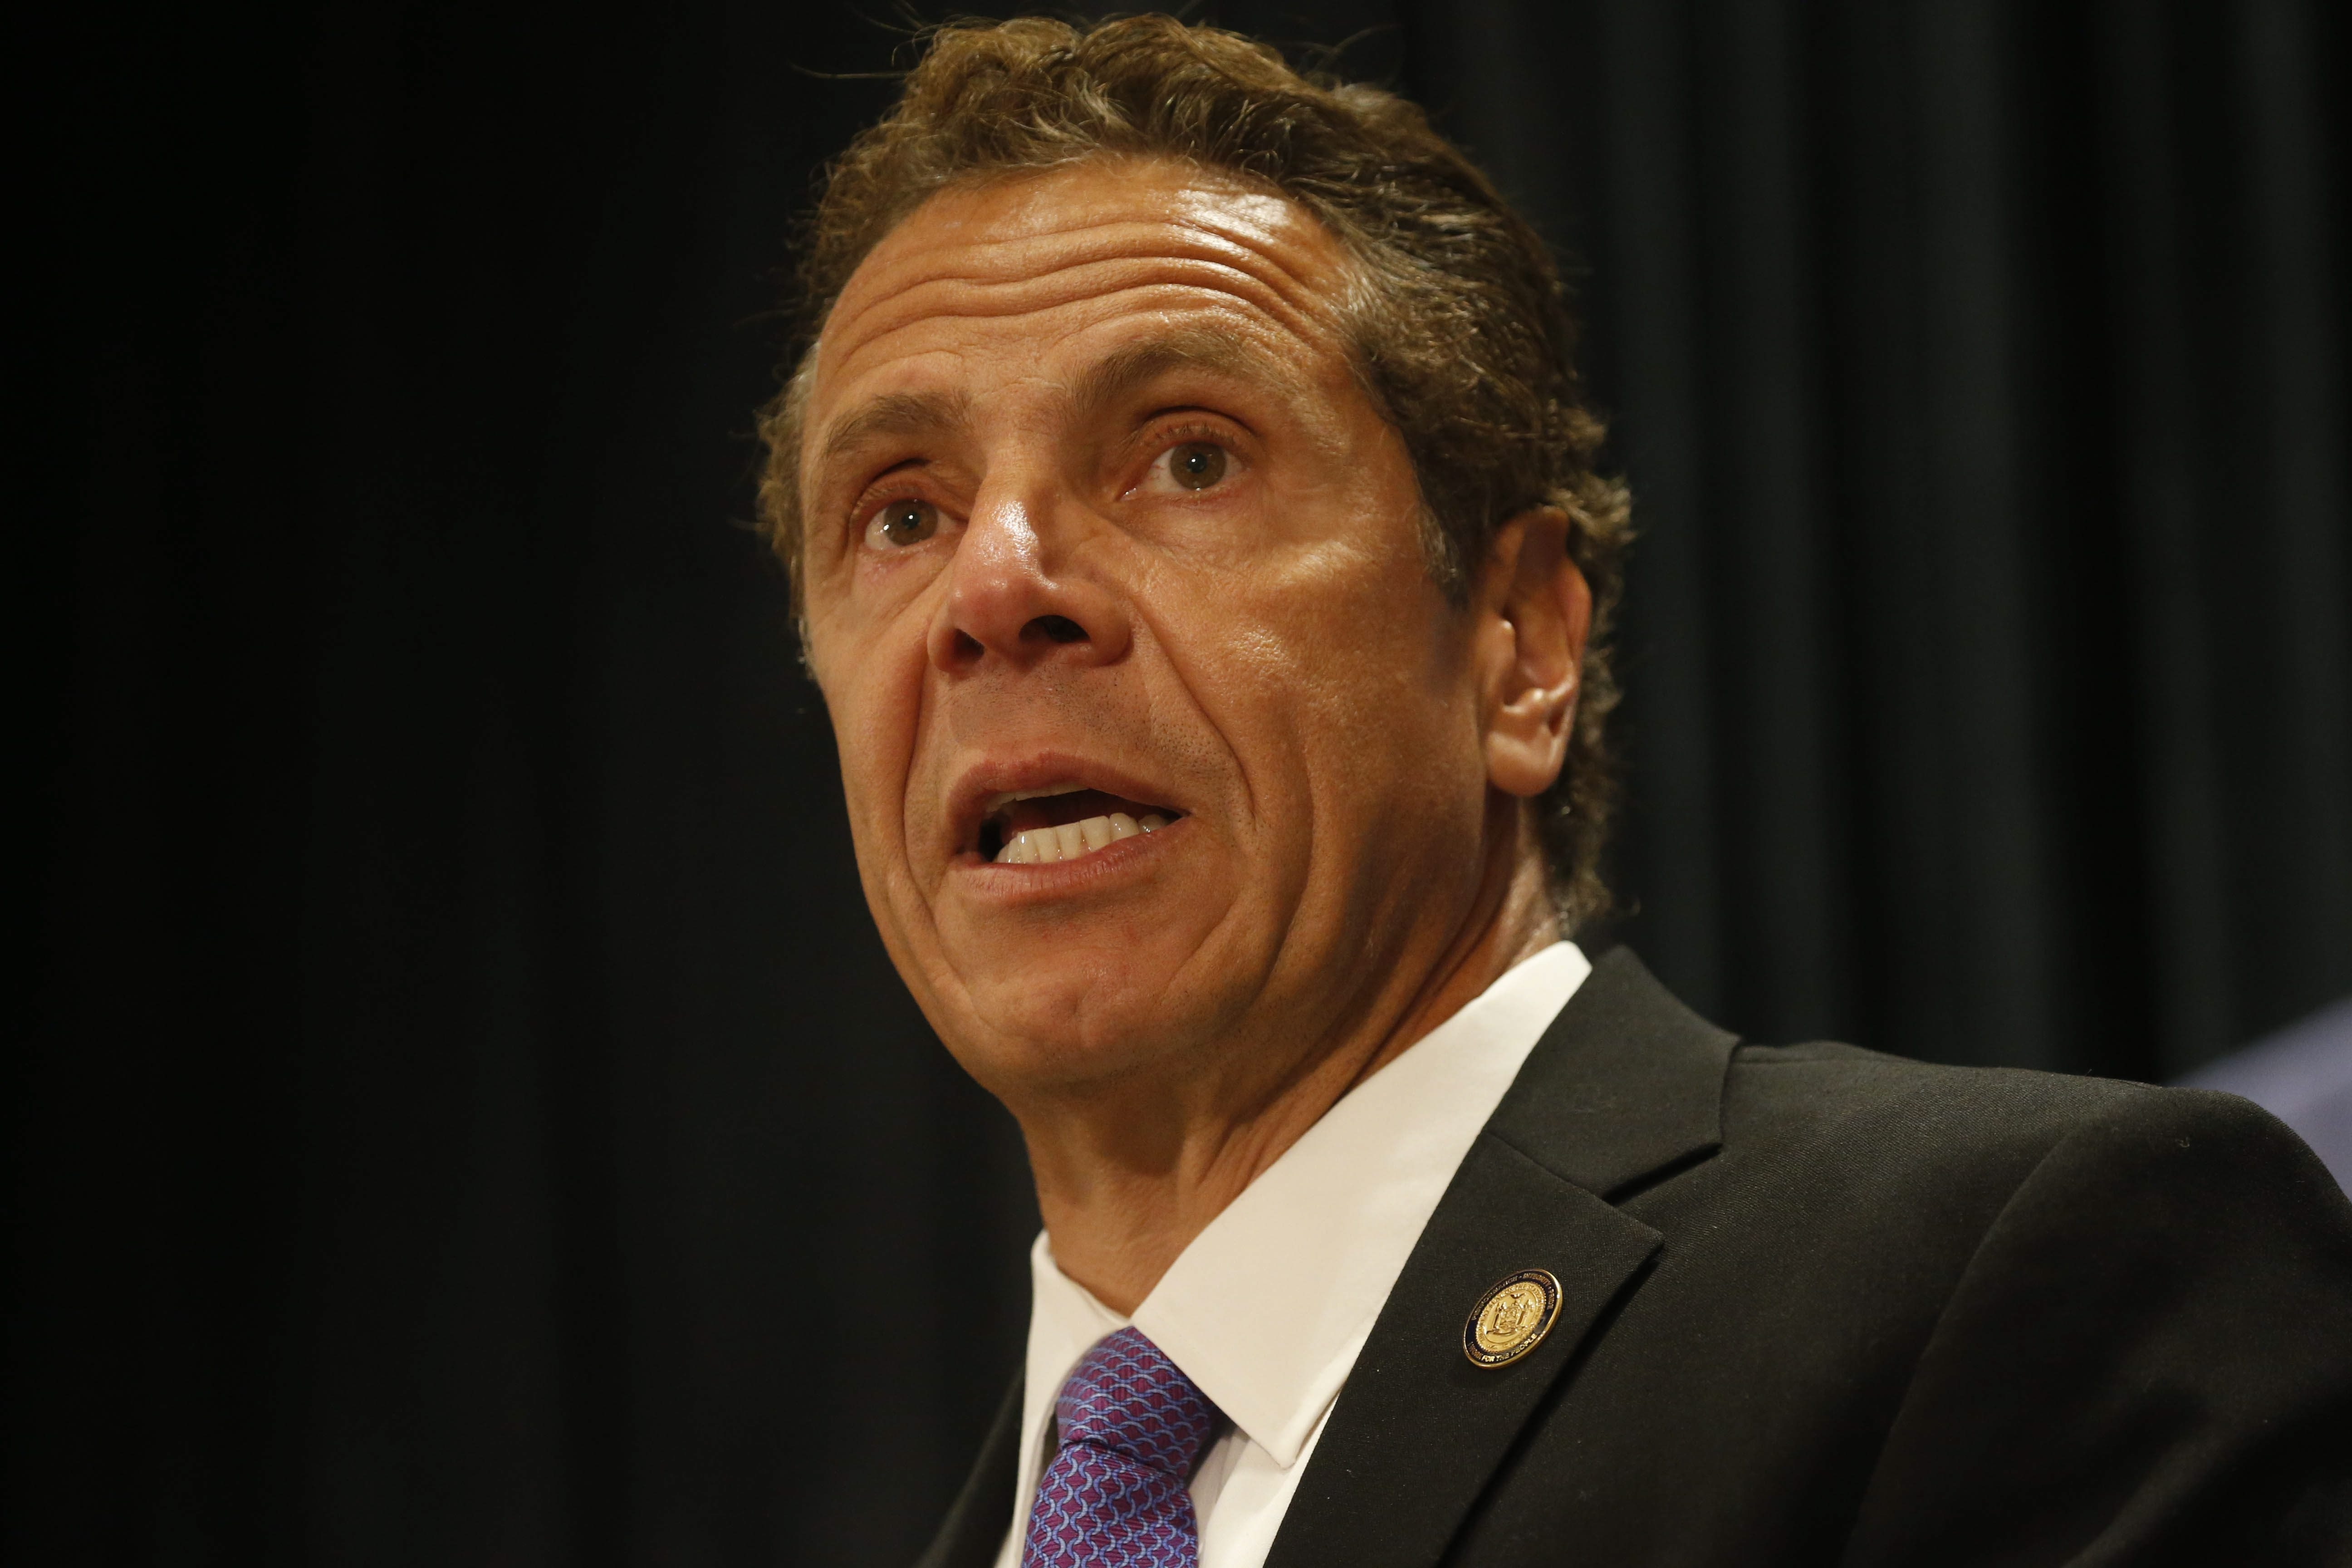 New York Gov. Andrew Cuomo speaks during the New York delegation breakfast at the Loews Hotel in Philadelphia, Tuesday, July 26, 2016.  (Photo by Derek Gee)